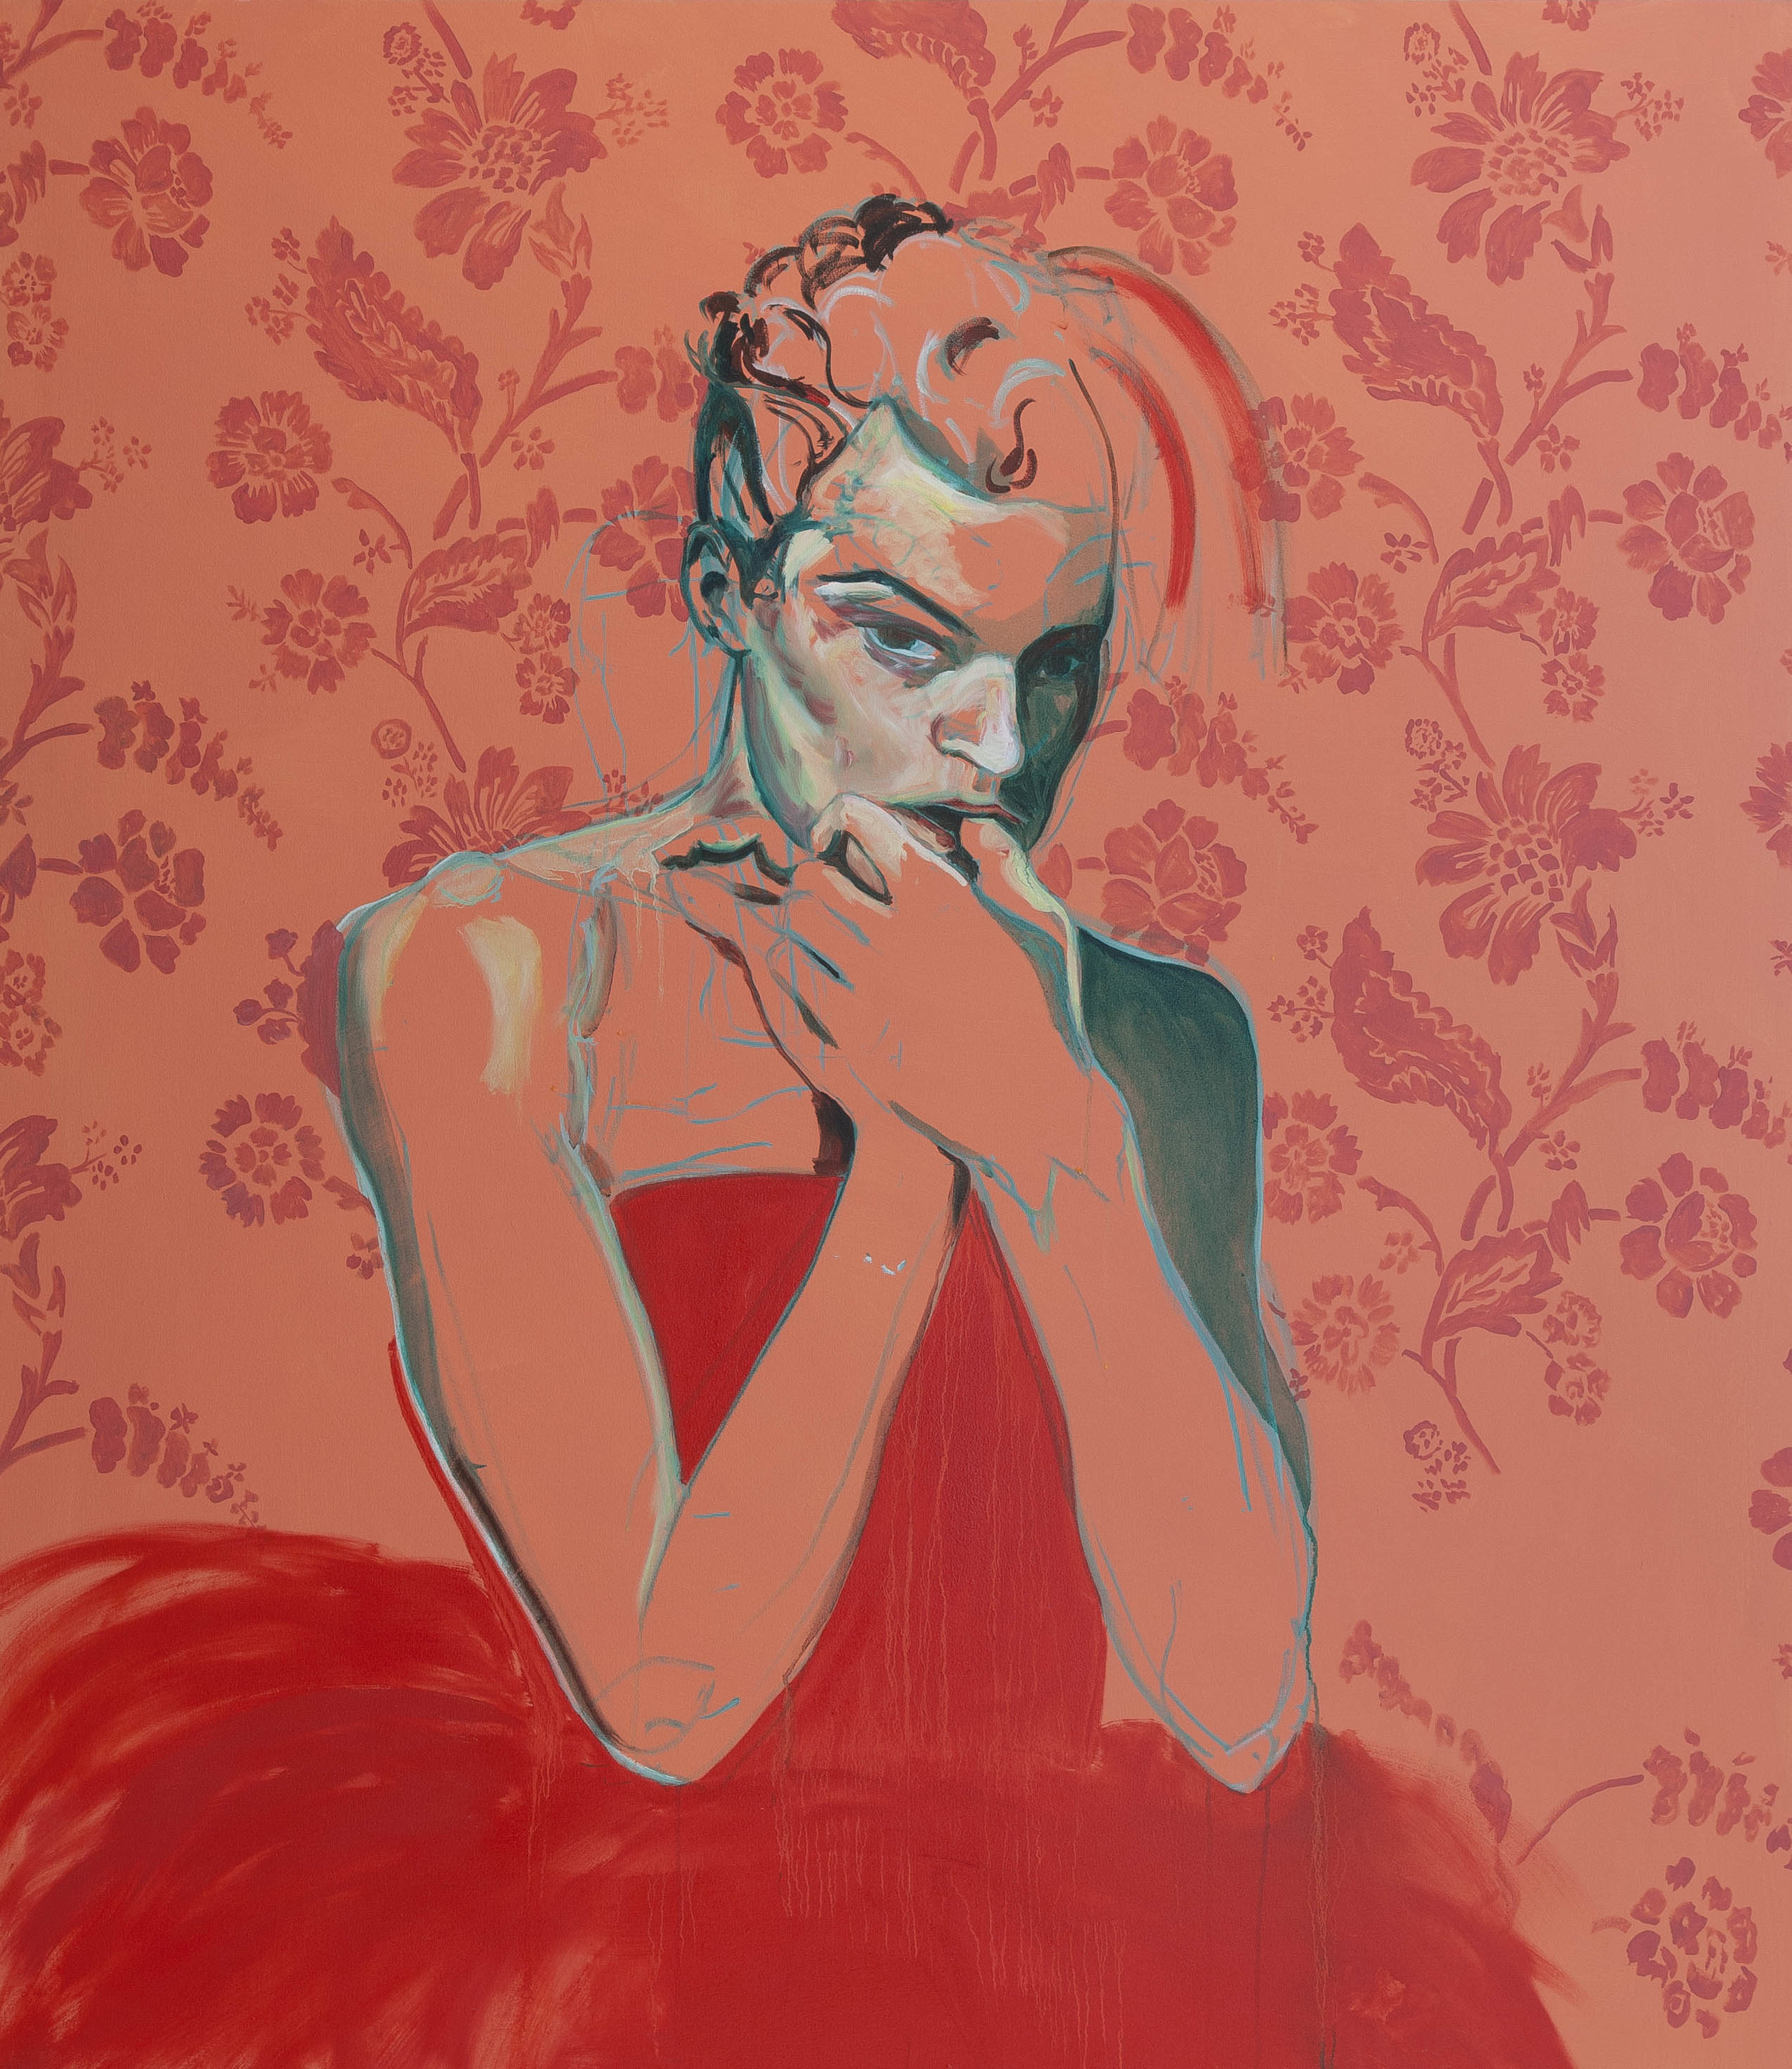 Coral Flair , 2013 Oil on linen, 150x120cm